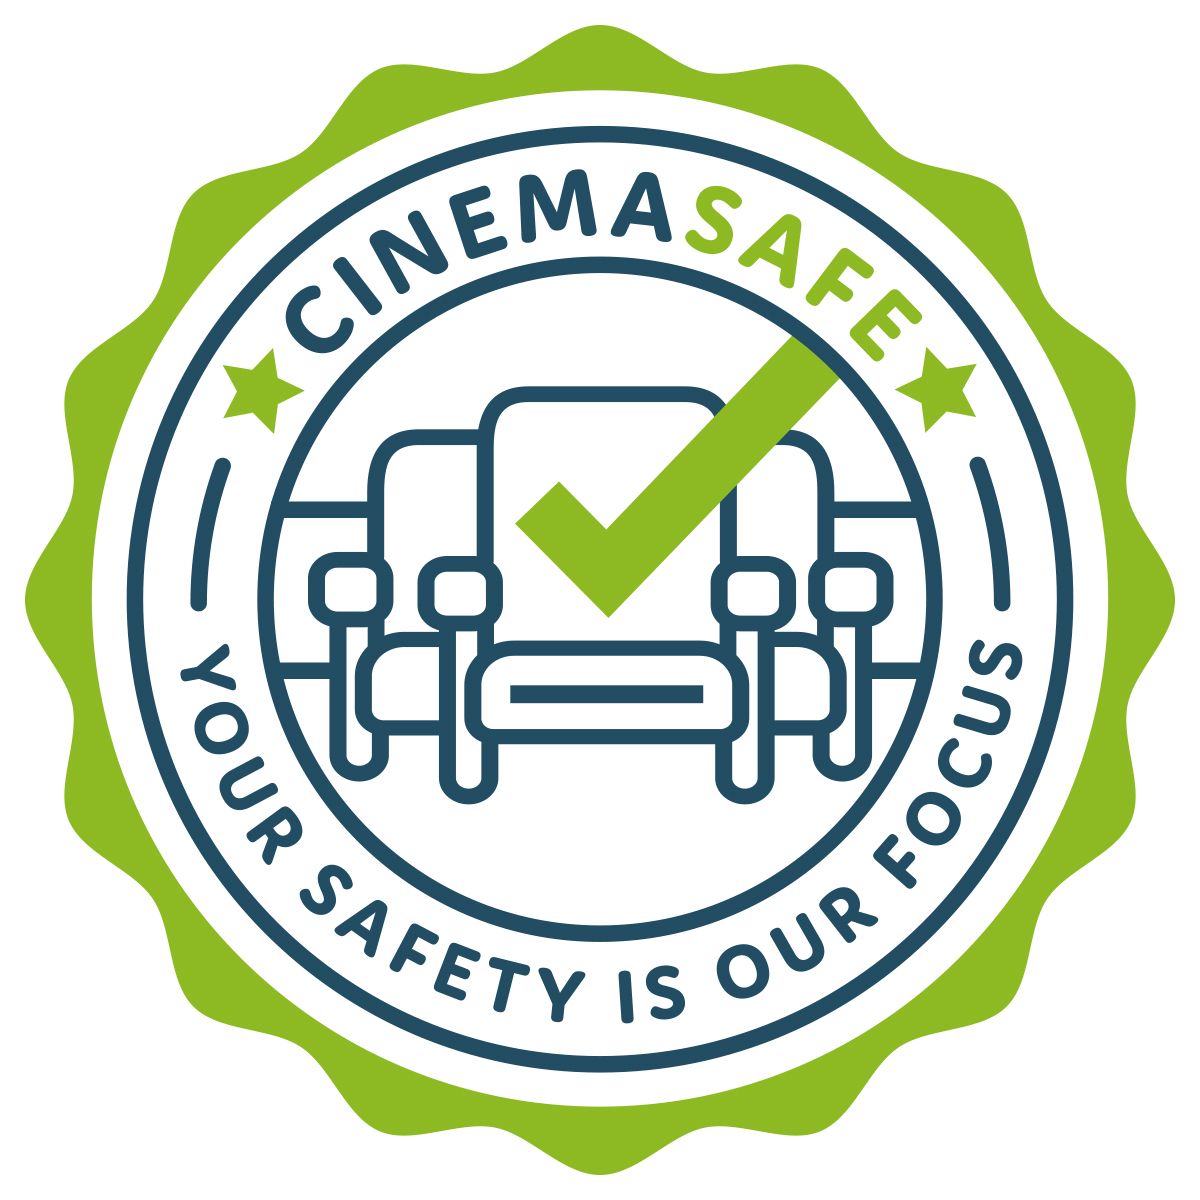 CinemaSafe - Your safety is our focus